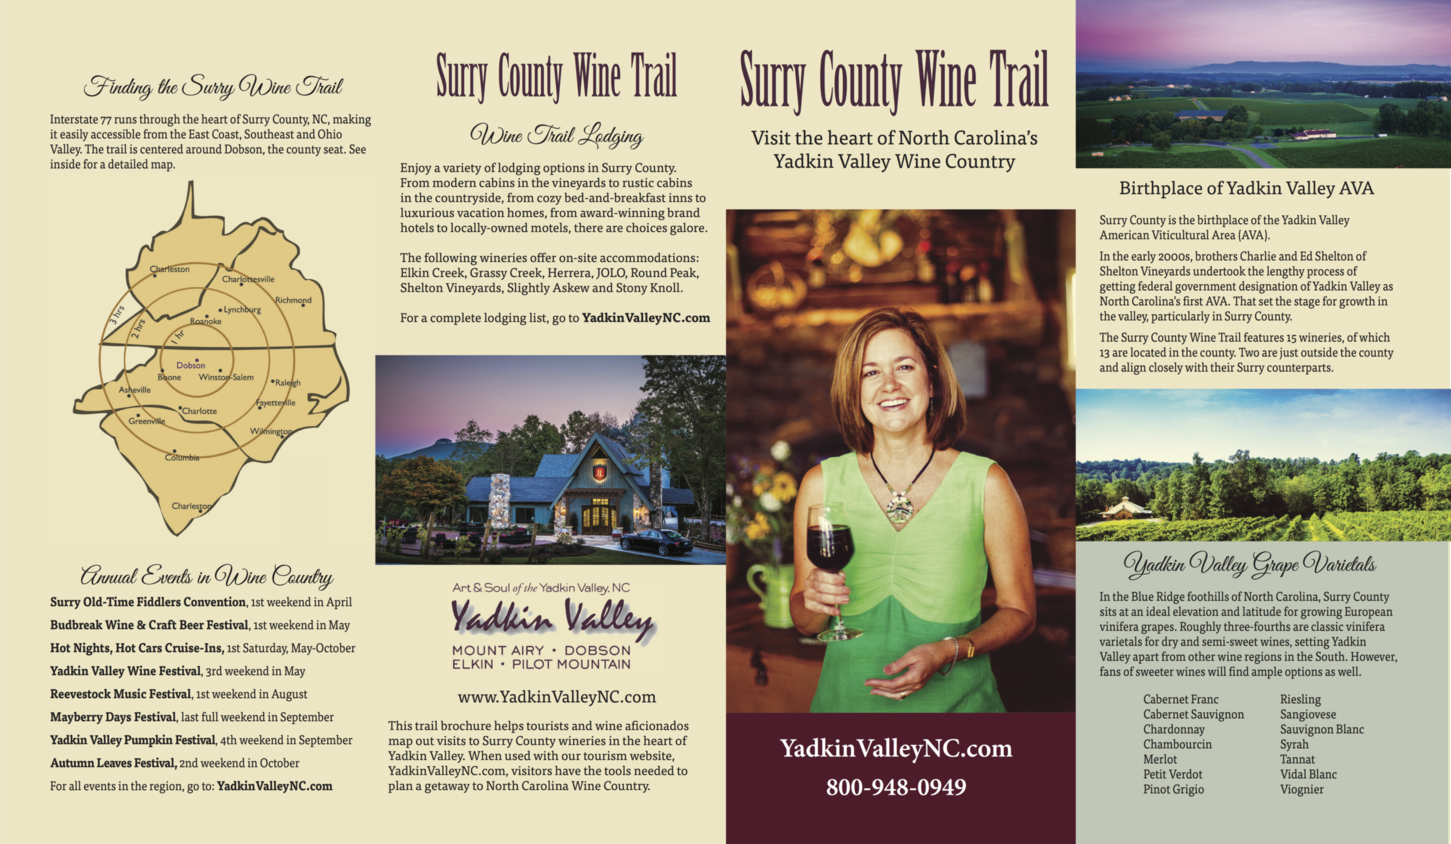 yadkin valley wineries map with Surry County Wine Trail on Surry County Wine Trail likewise Herrera Vineyards Opens In The Heart Of The Yadkin Valley together with North Carolina furthermore Distillery Brewery Tours further Cgtwines.